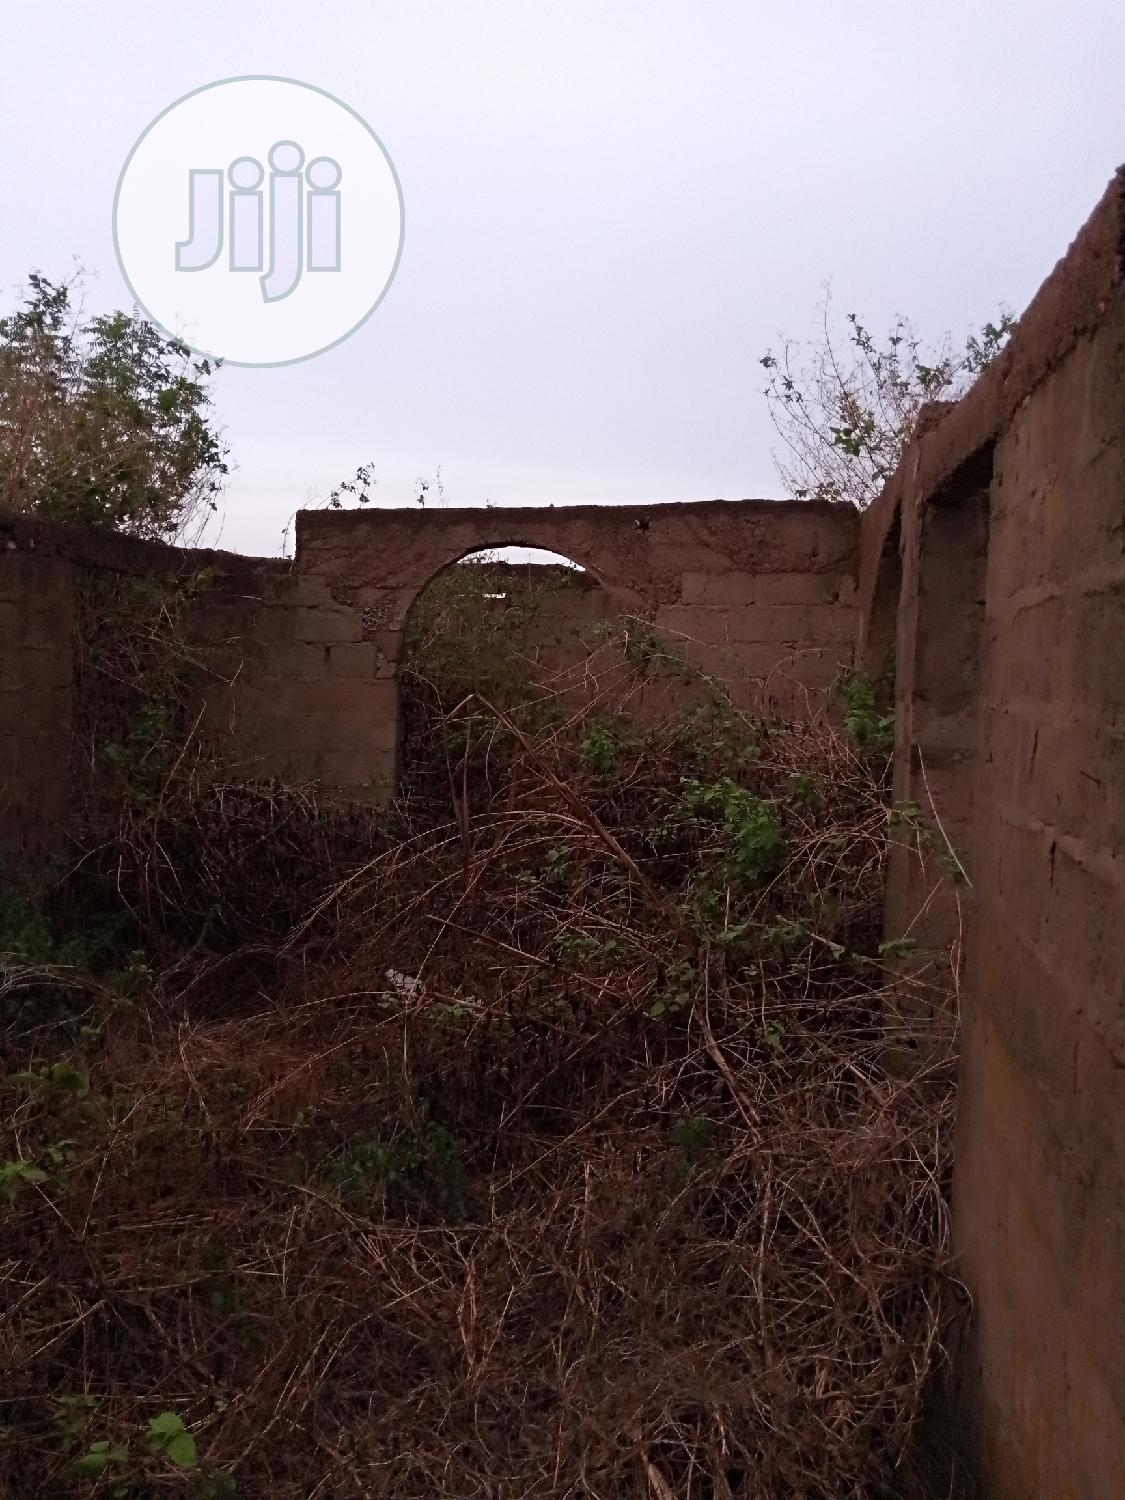 4bdrm Bungalow in Ilorin East for Sale   Houses & Apartments For Sale for sale in Ilorin East, Kwara State, Nigeria